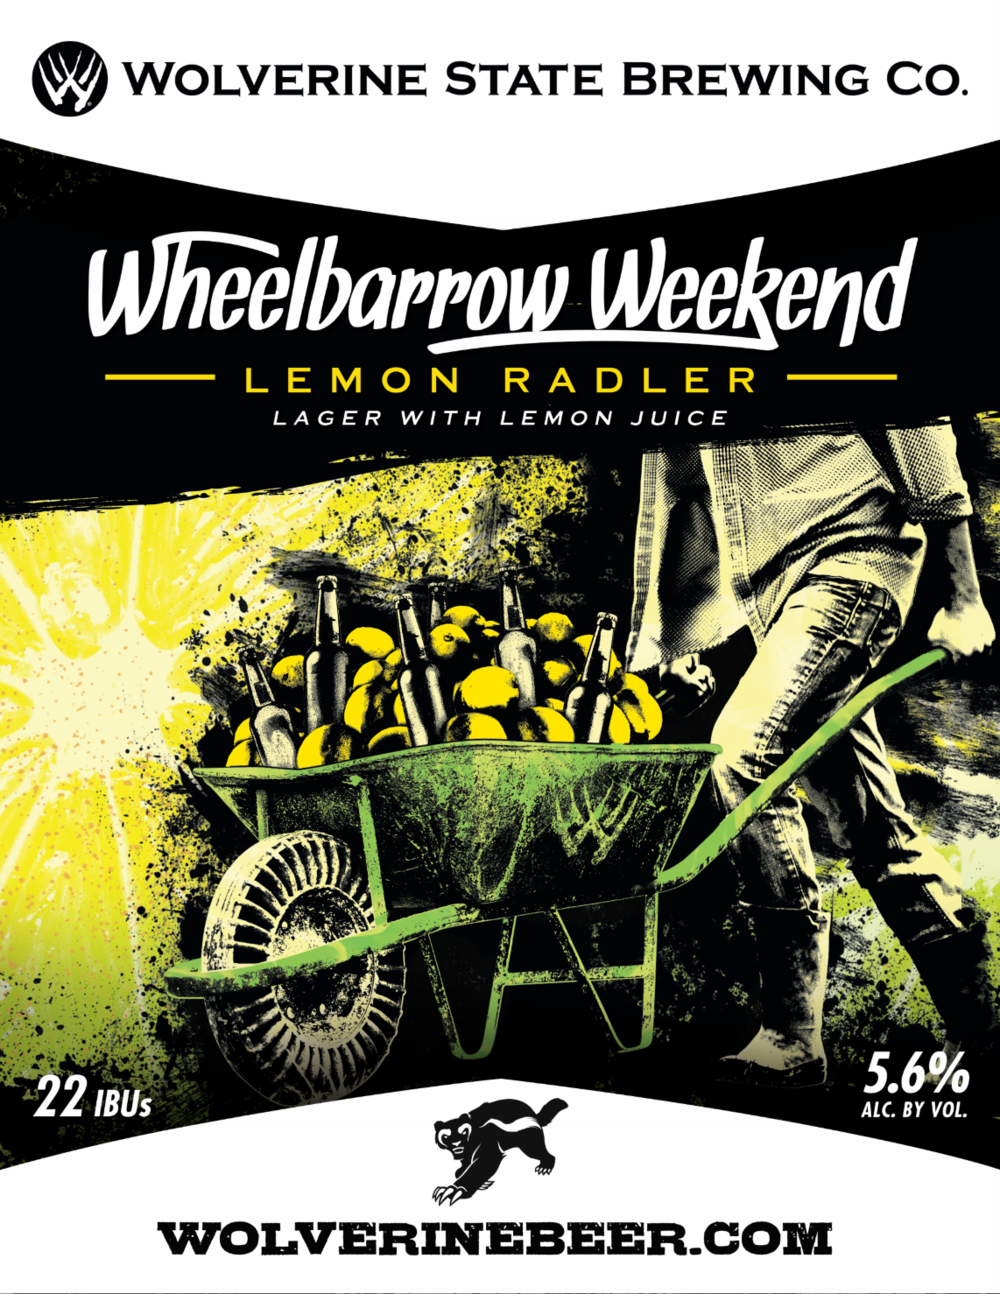 Wheelbarrow Weekend Beer Poster